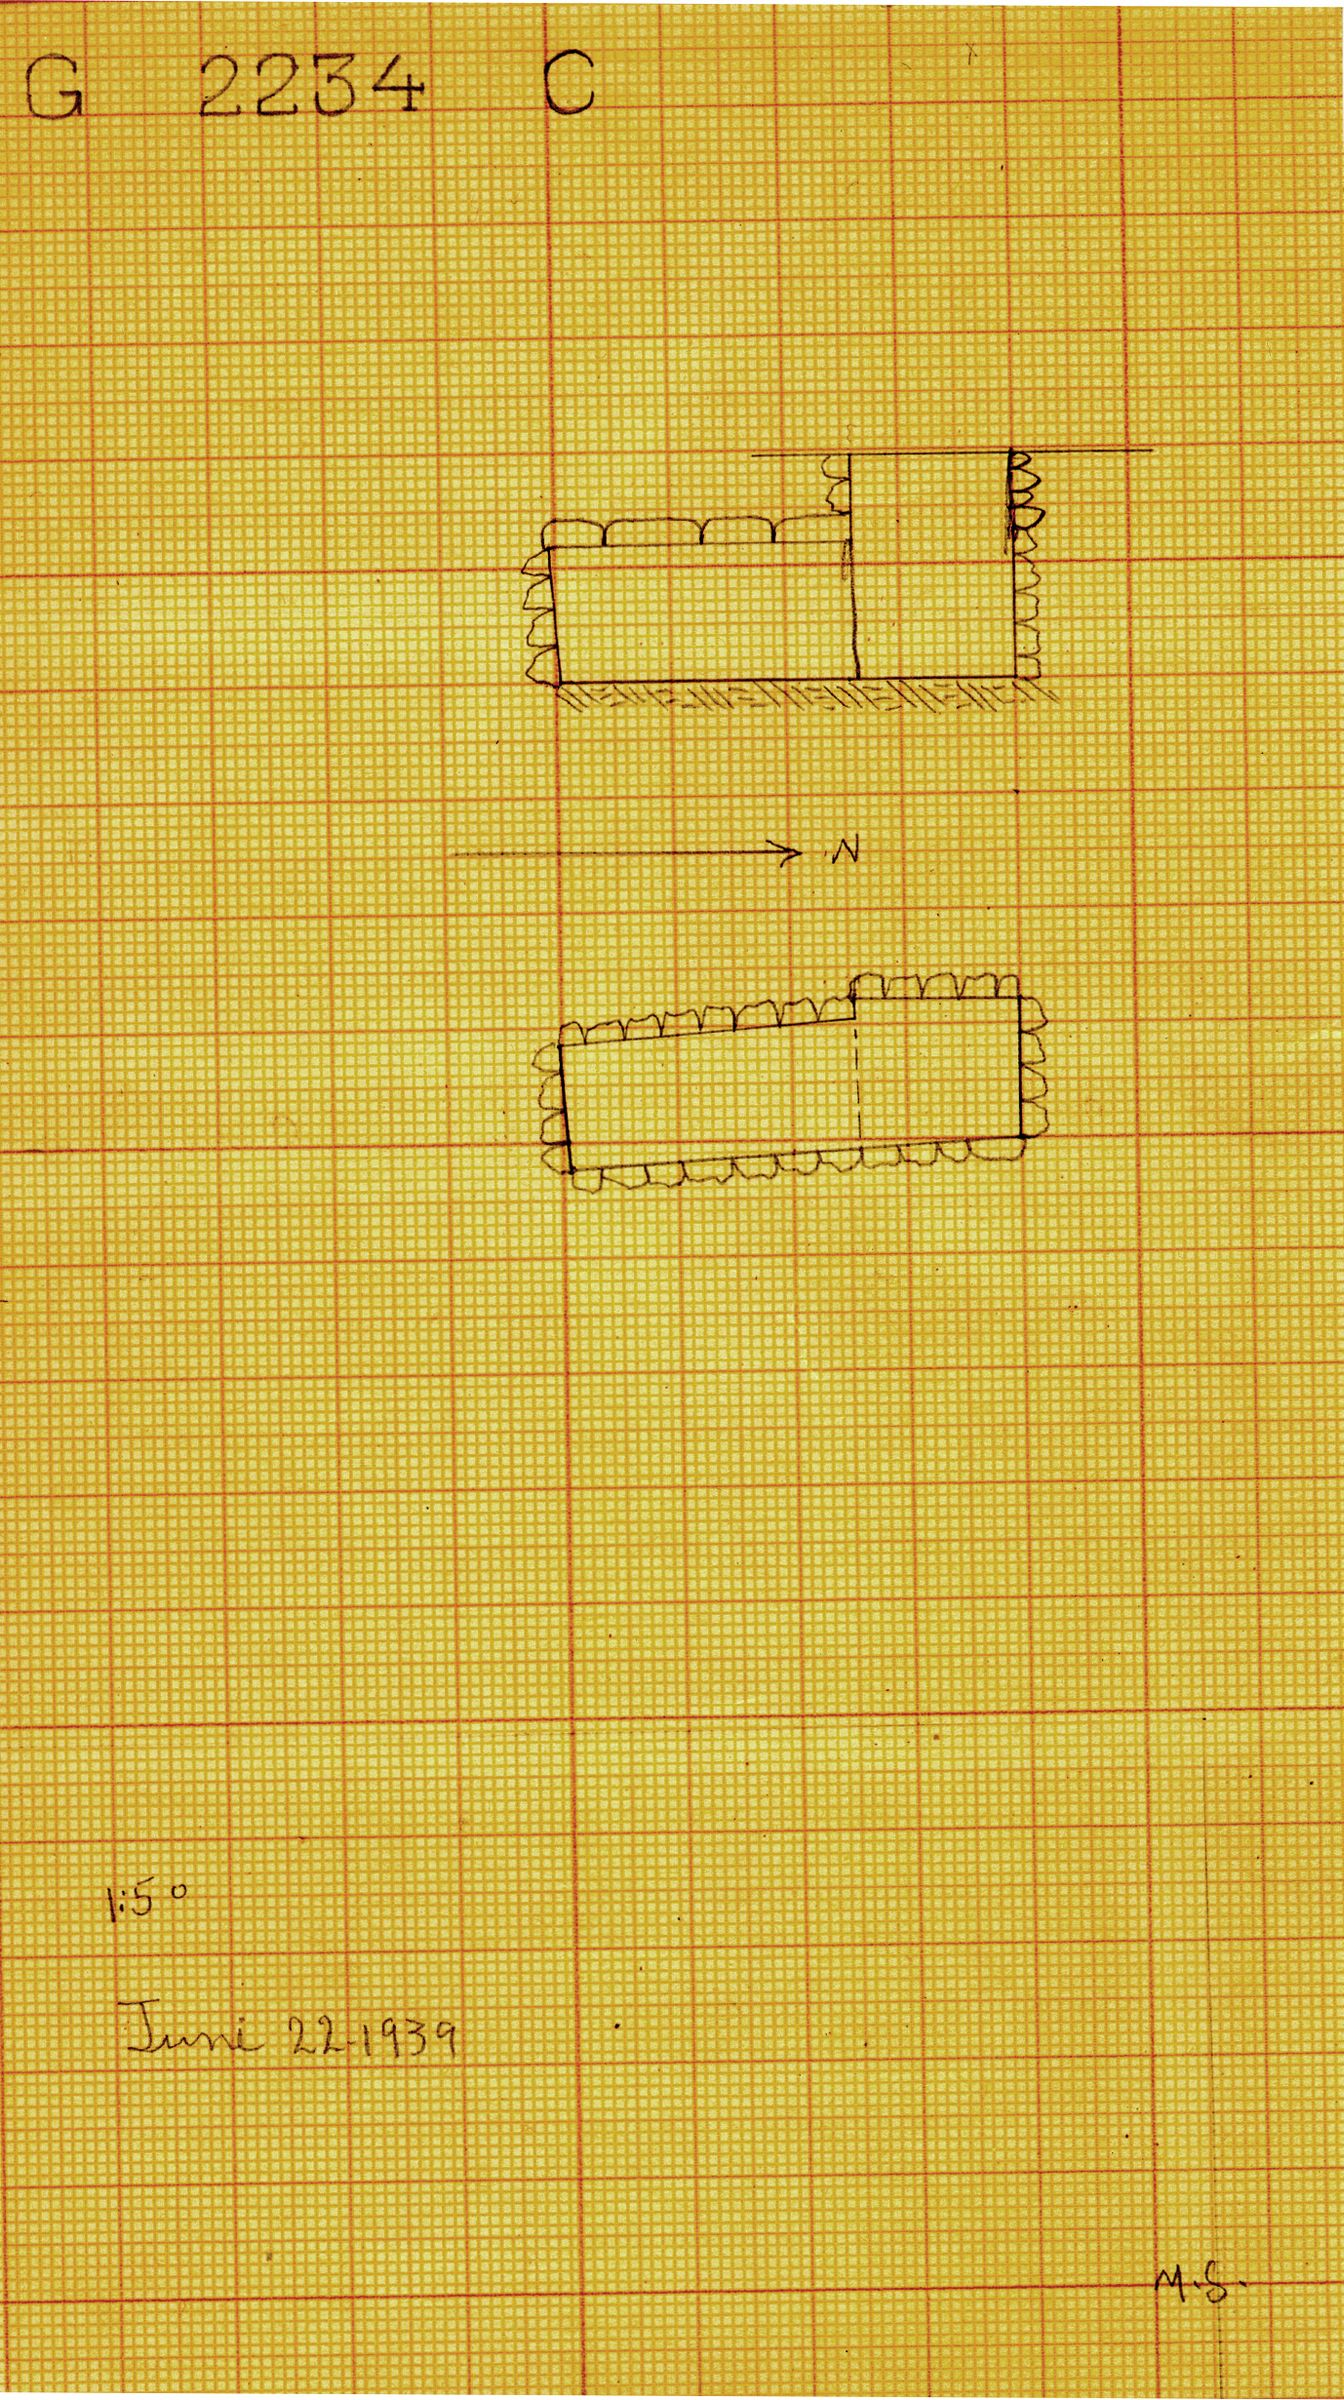 Maps and plans: G 2234, Shaft C